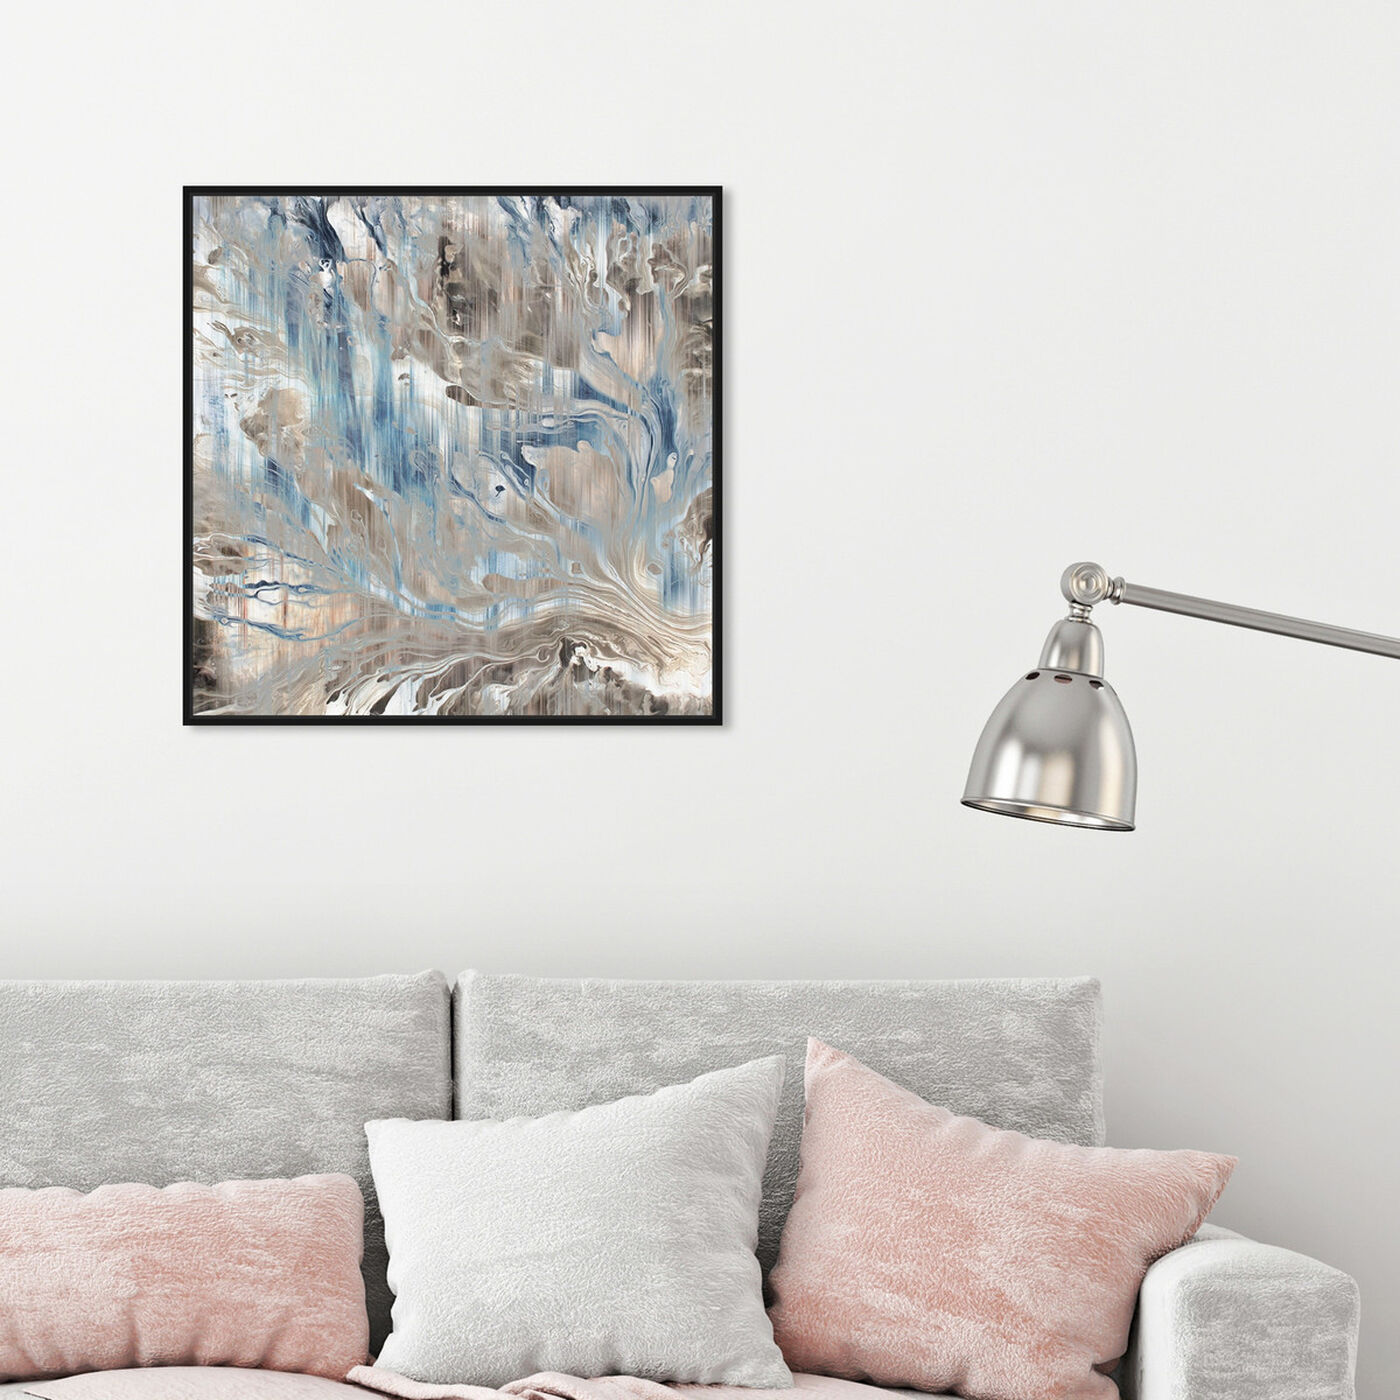 Hanging view of Marmolato featuring abstract and paint art.